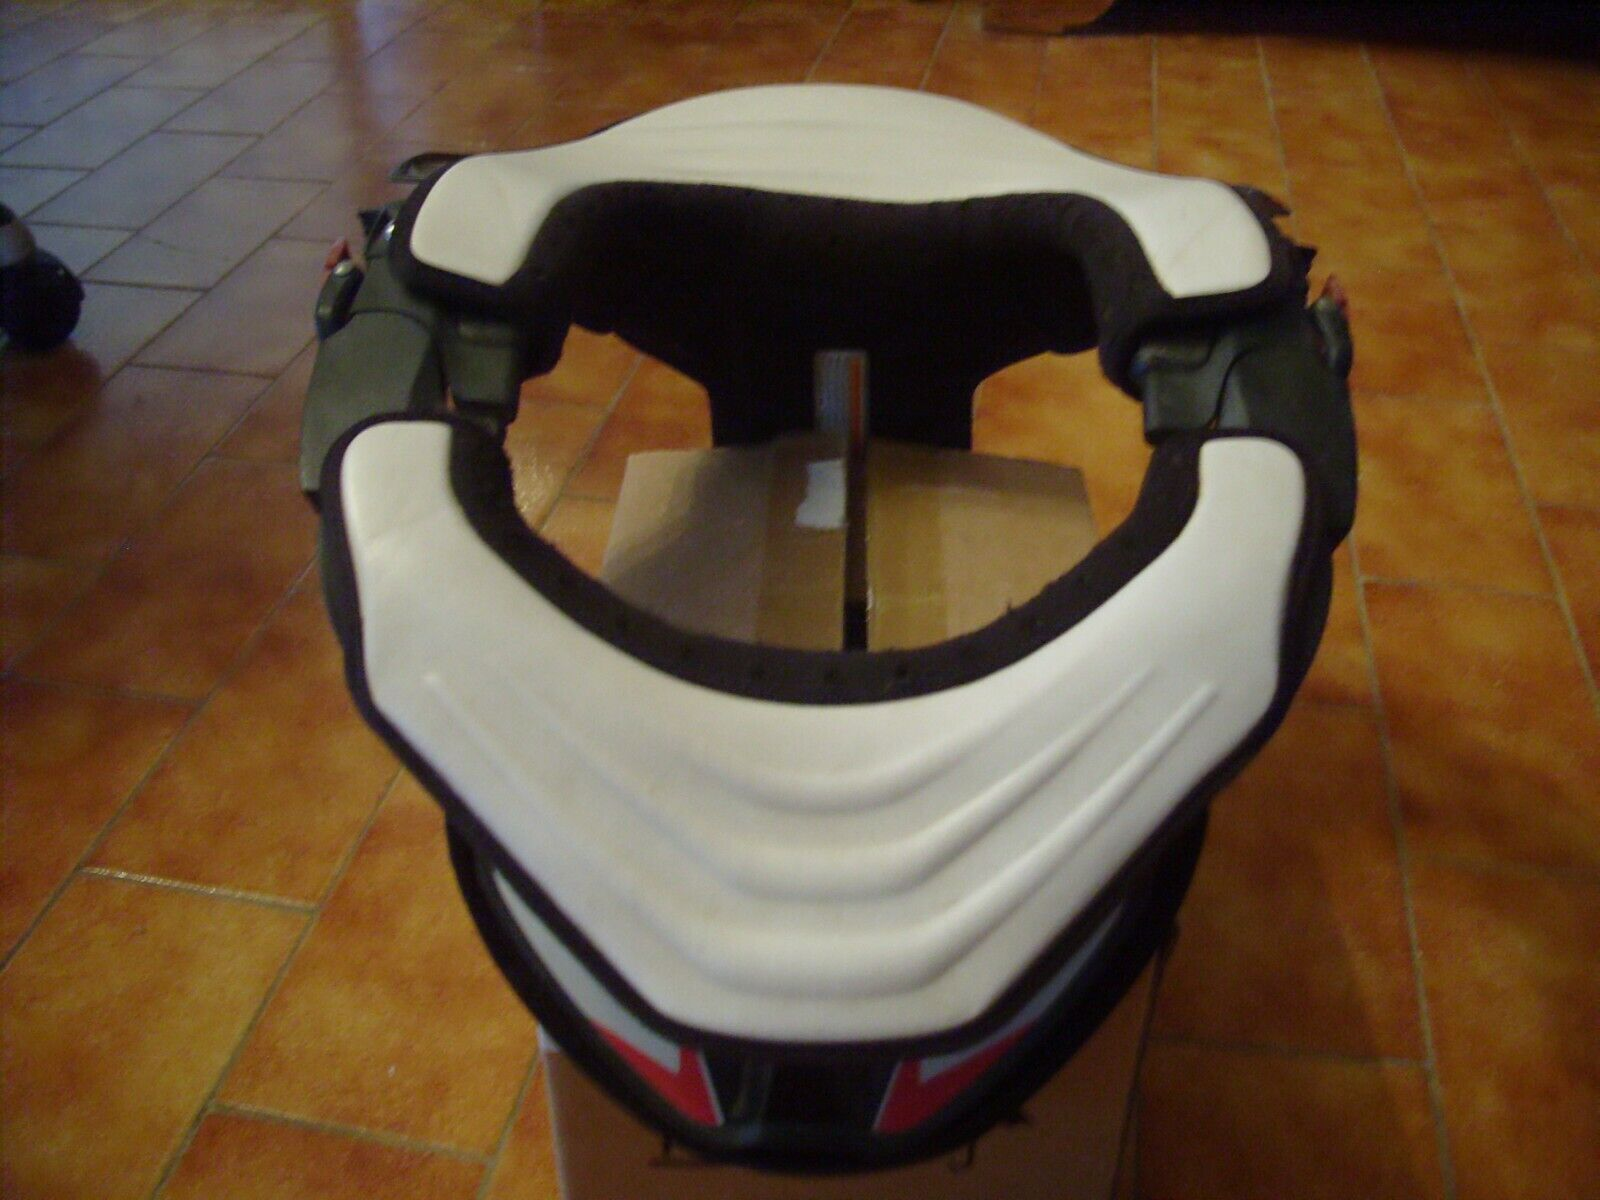 Protection protections cervicale moto cross